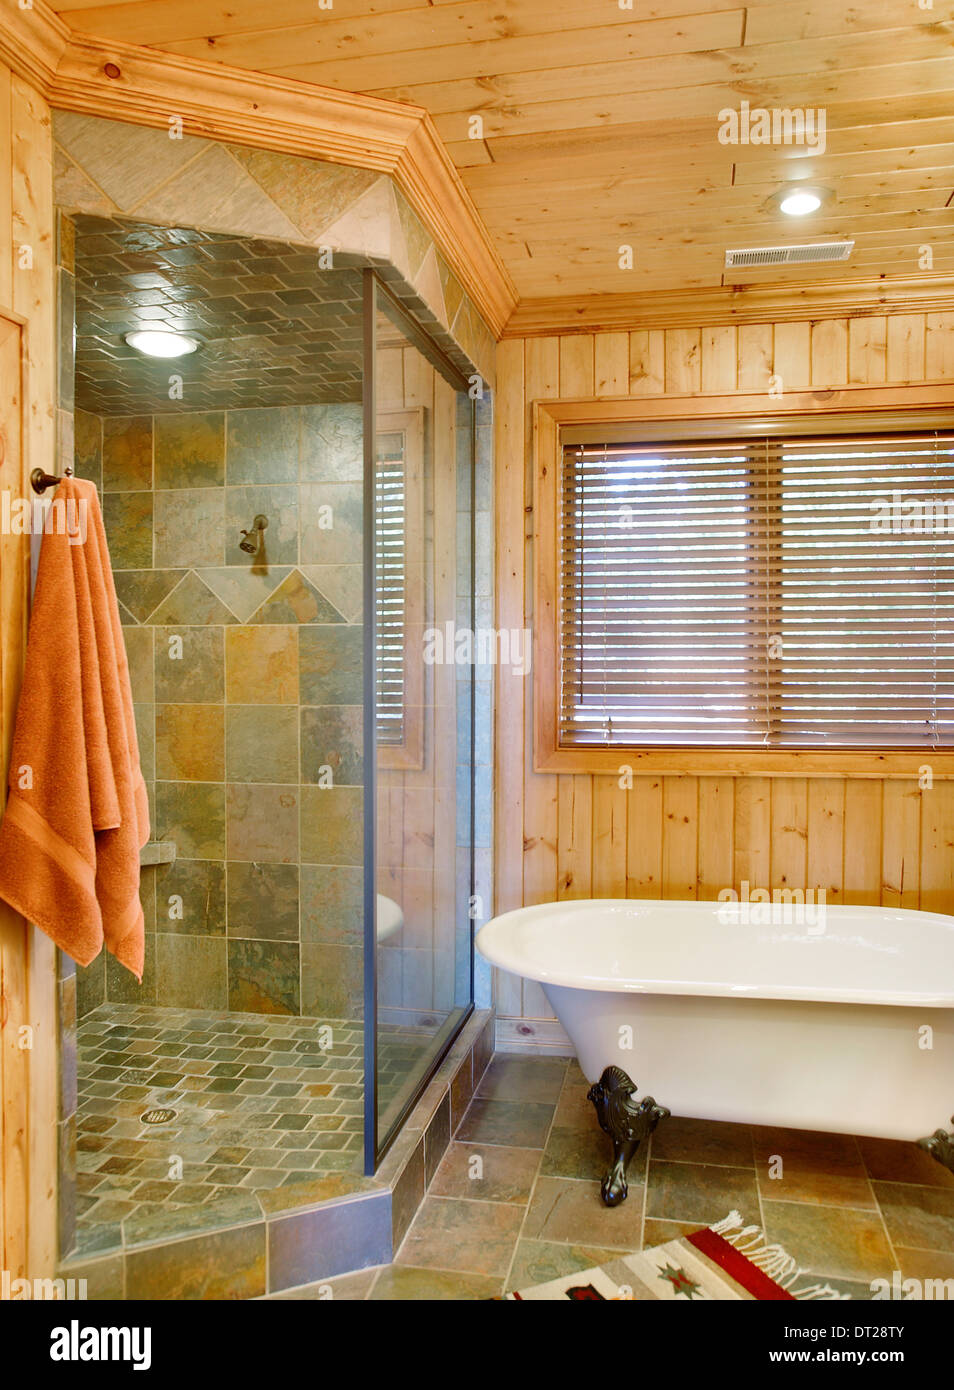 Claw foot tub and shower, - Stock Image